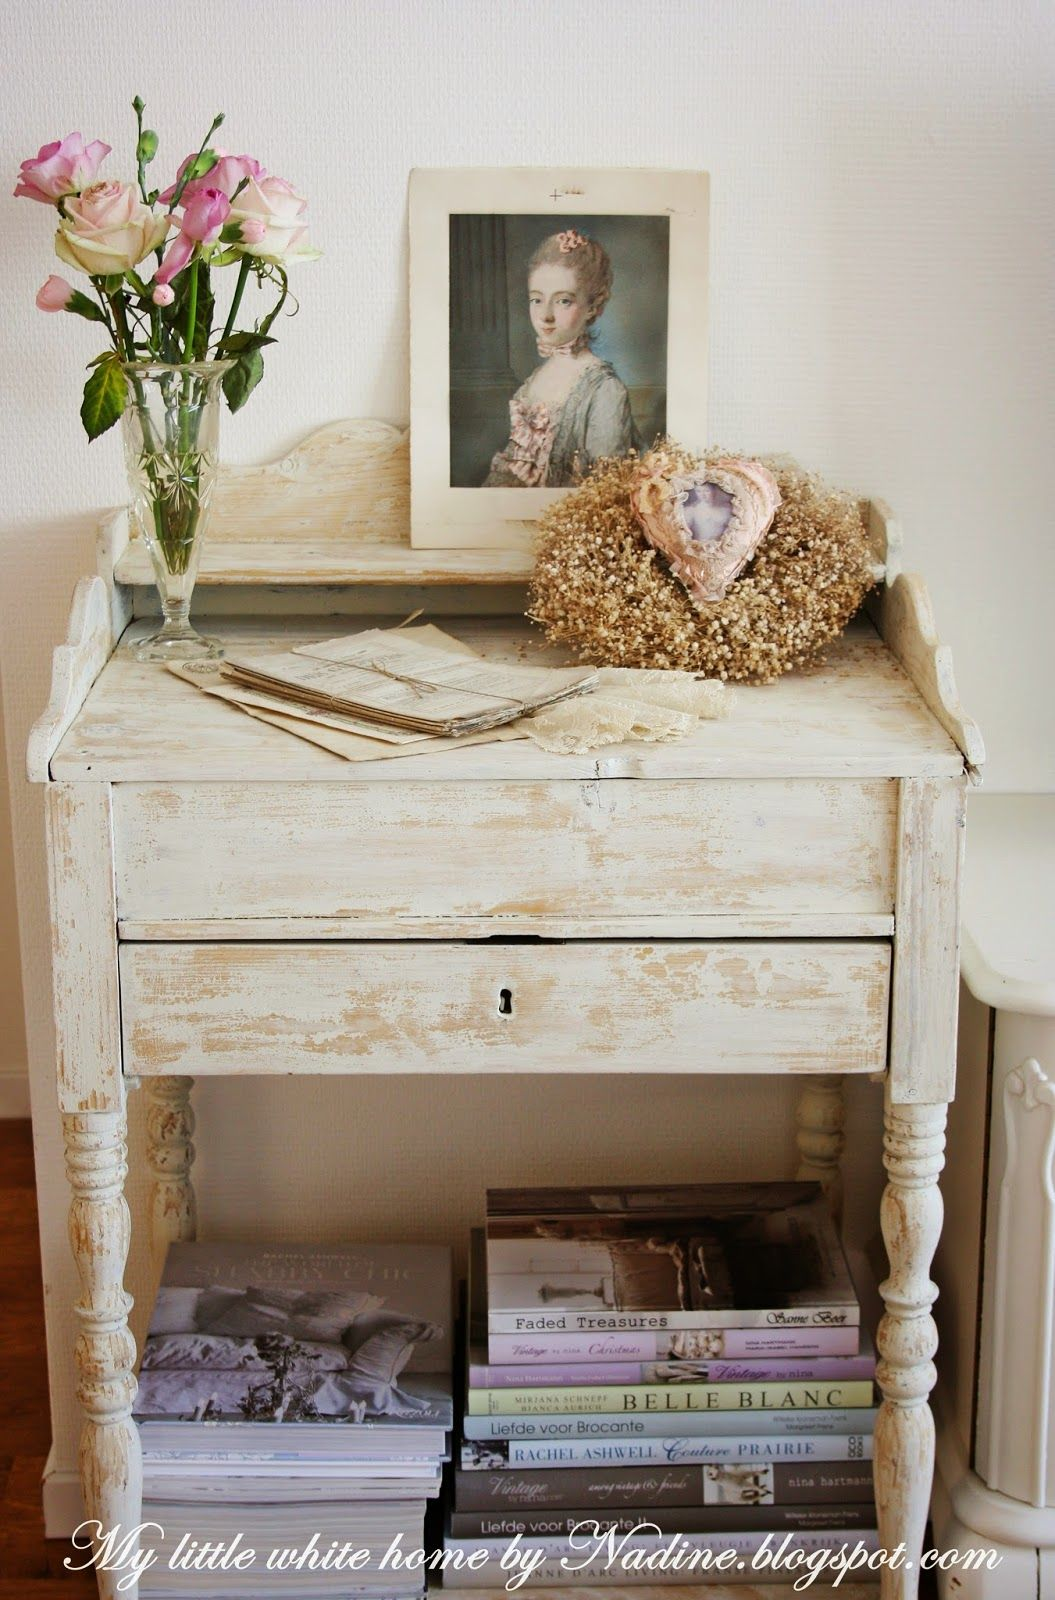 An old, little desk for my books and magazines.  My little white home by Nadine